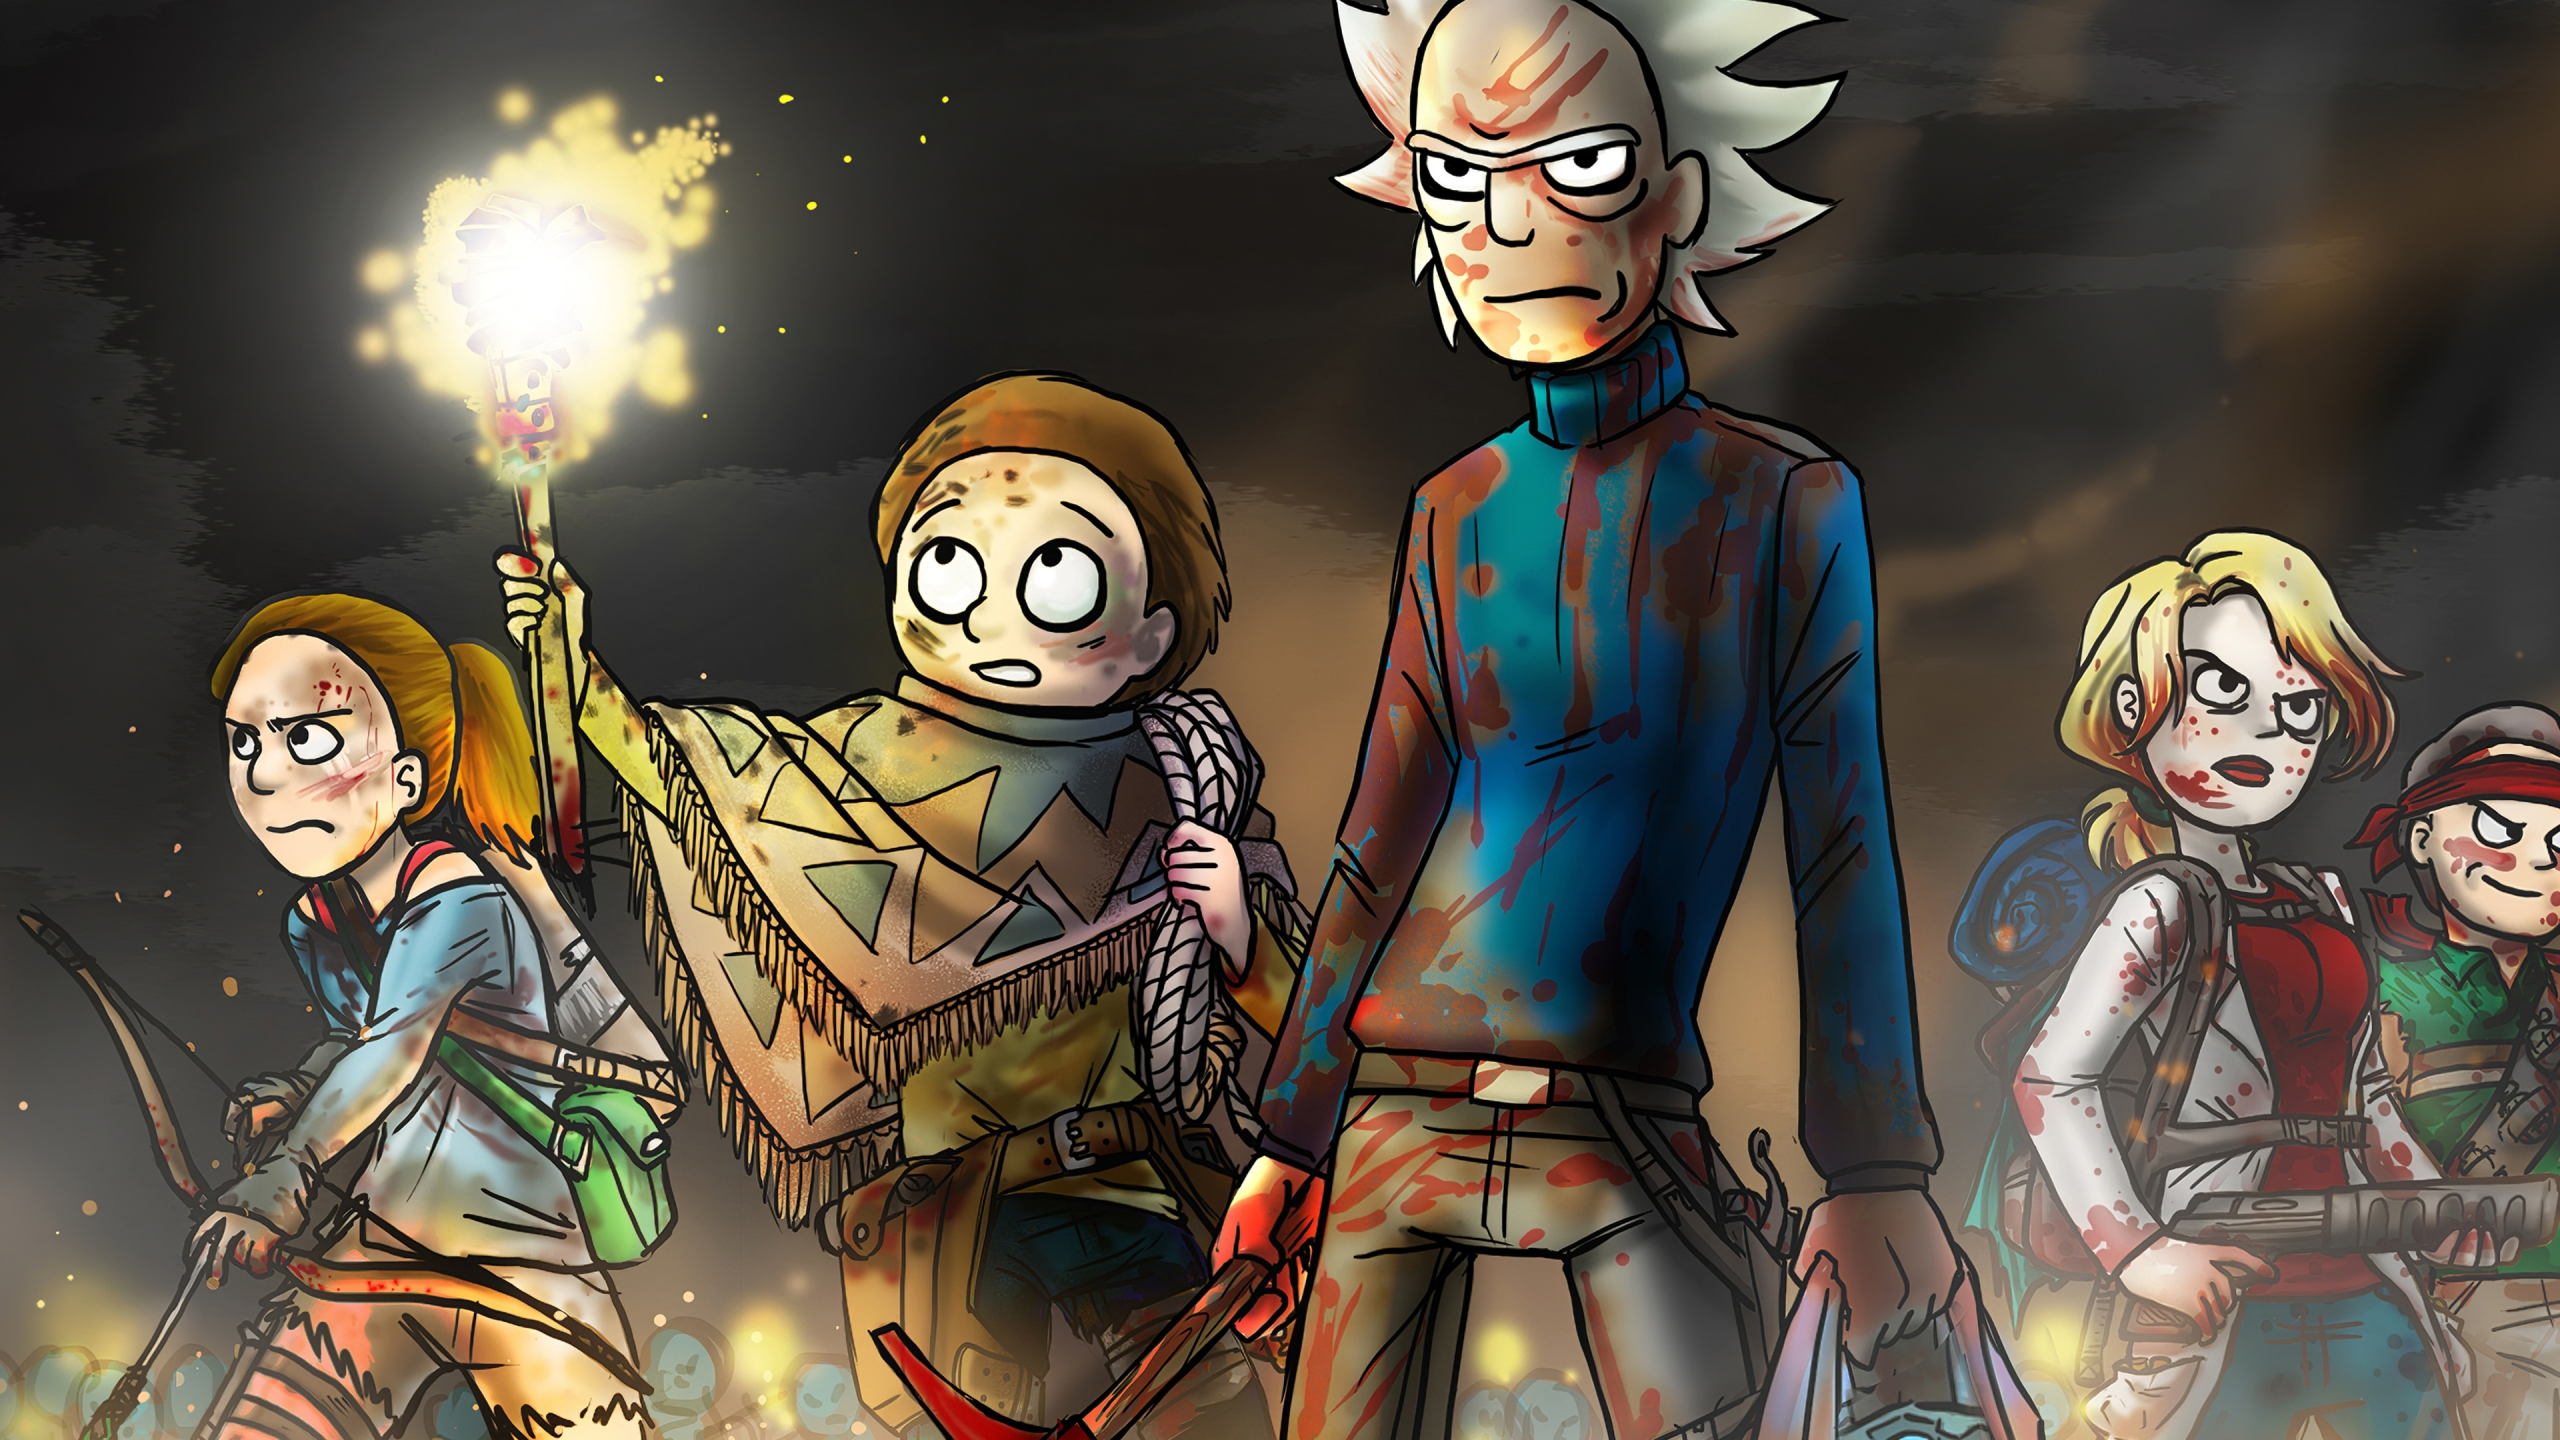 Rick And Morty In Battle Wallpaper 4k Ultra Hd Id 4119